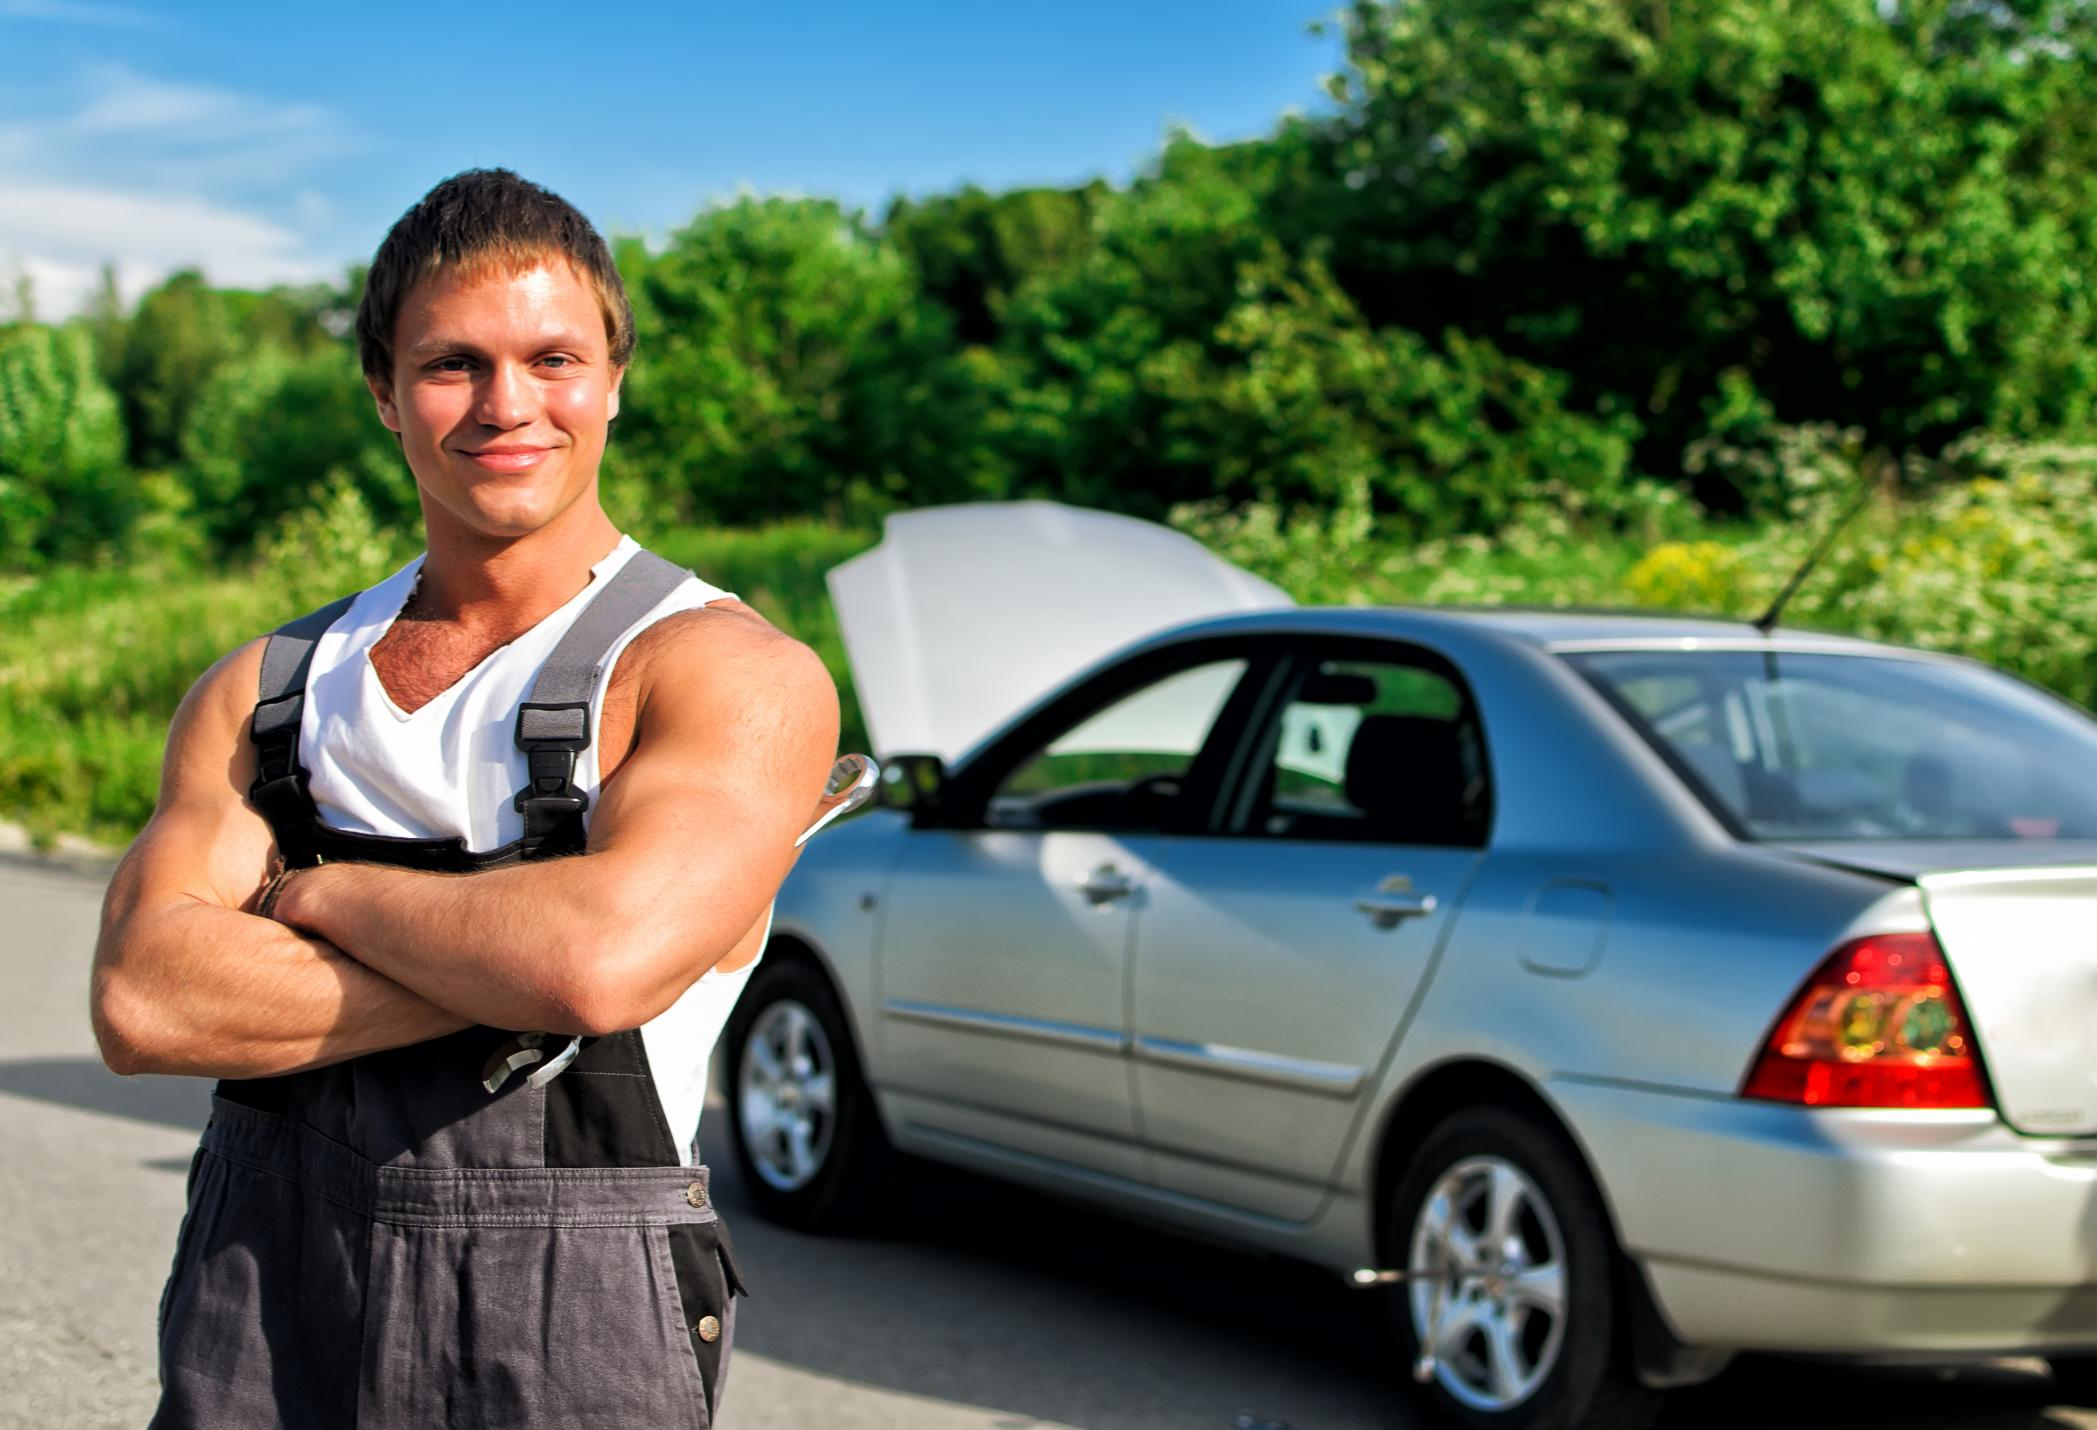 This is a picture of a tow truck repair service.